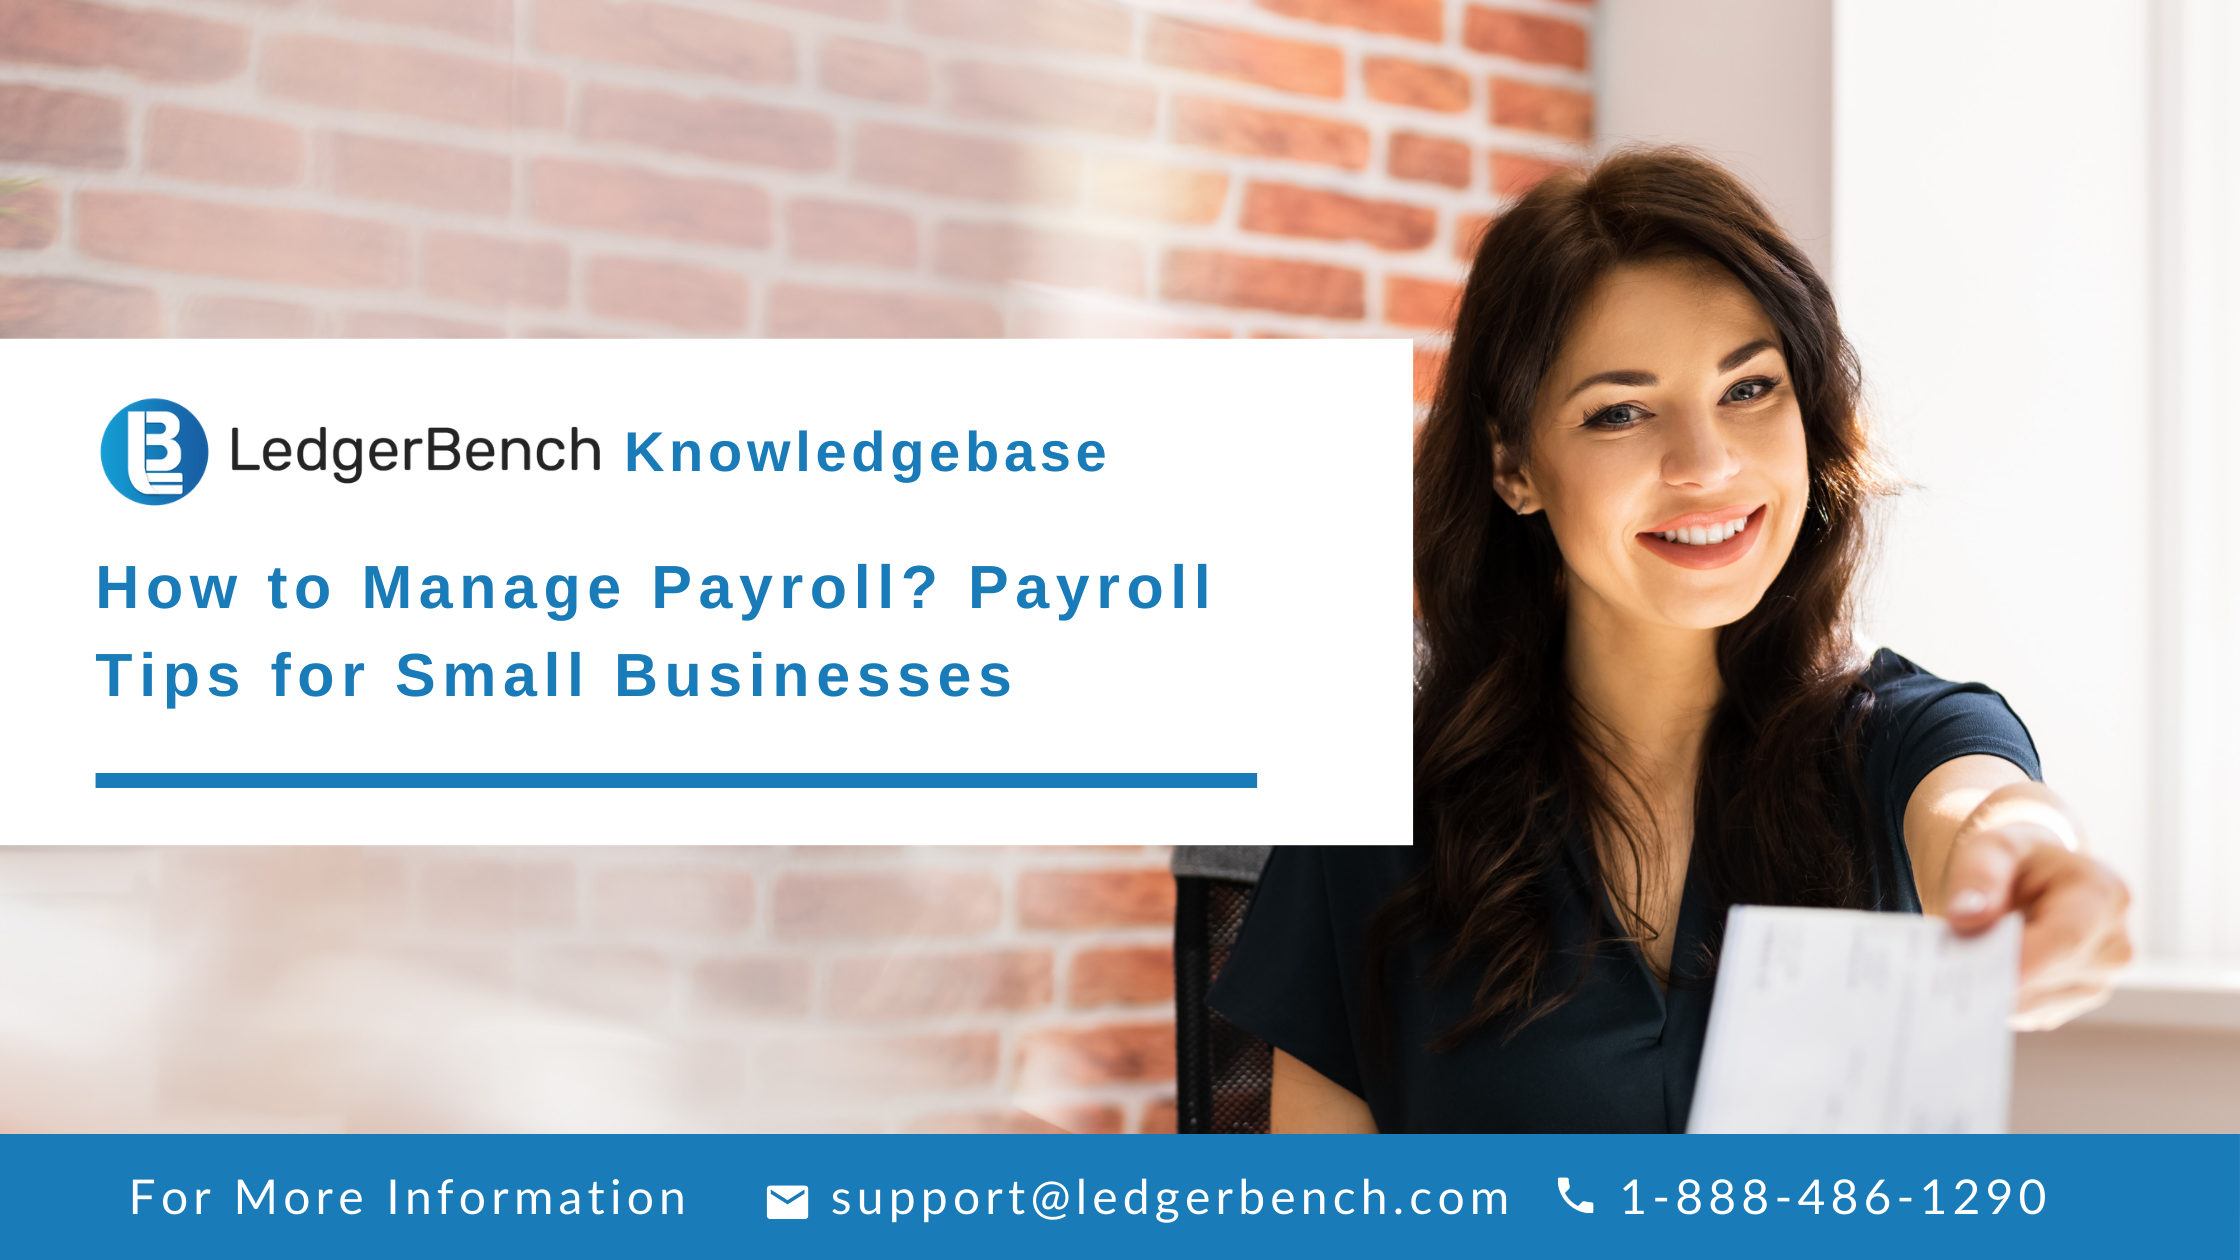 How to Manage Payroll? Payroll Tips for Small Businesses